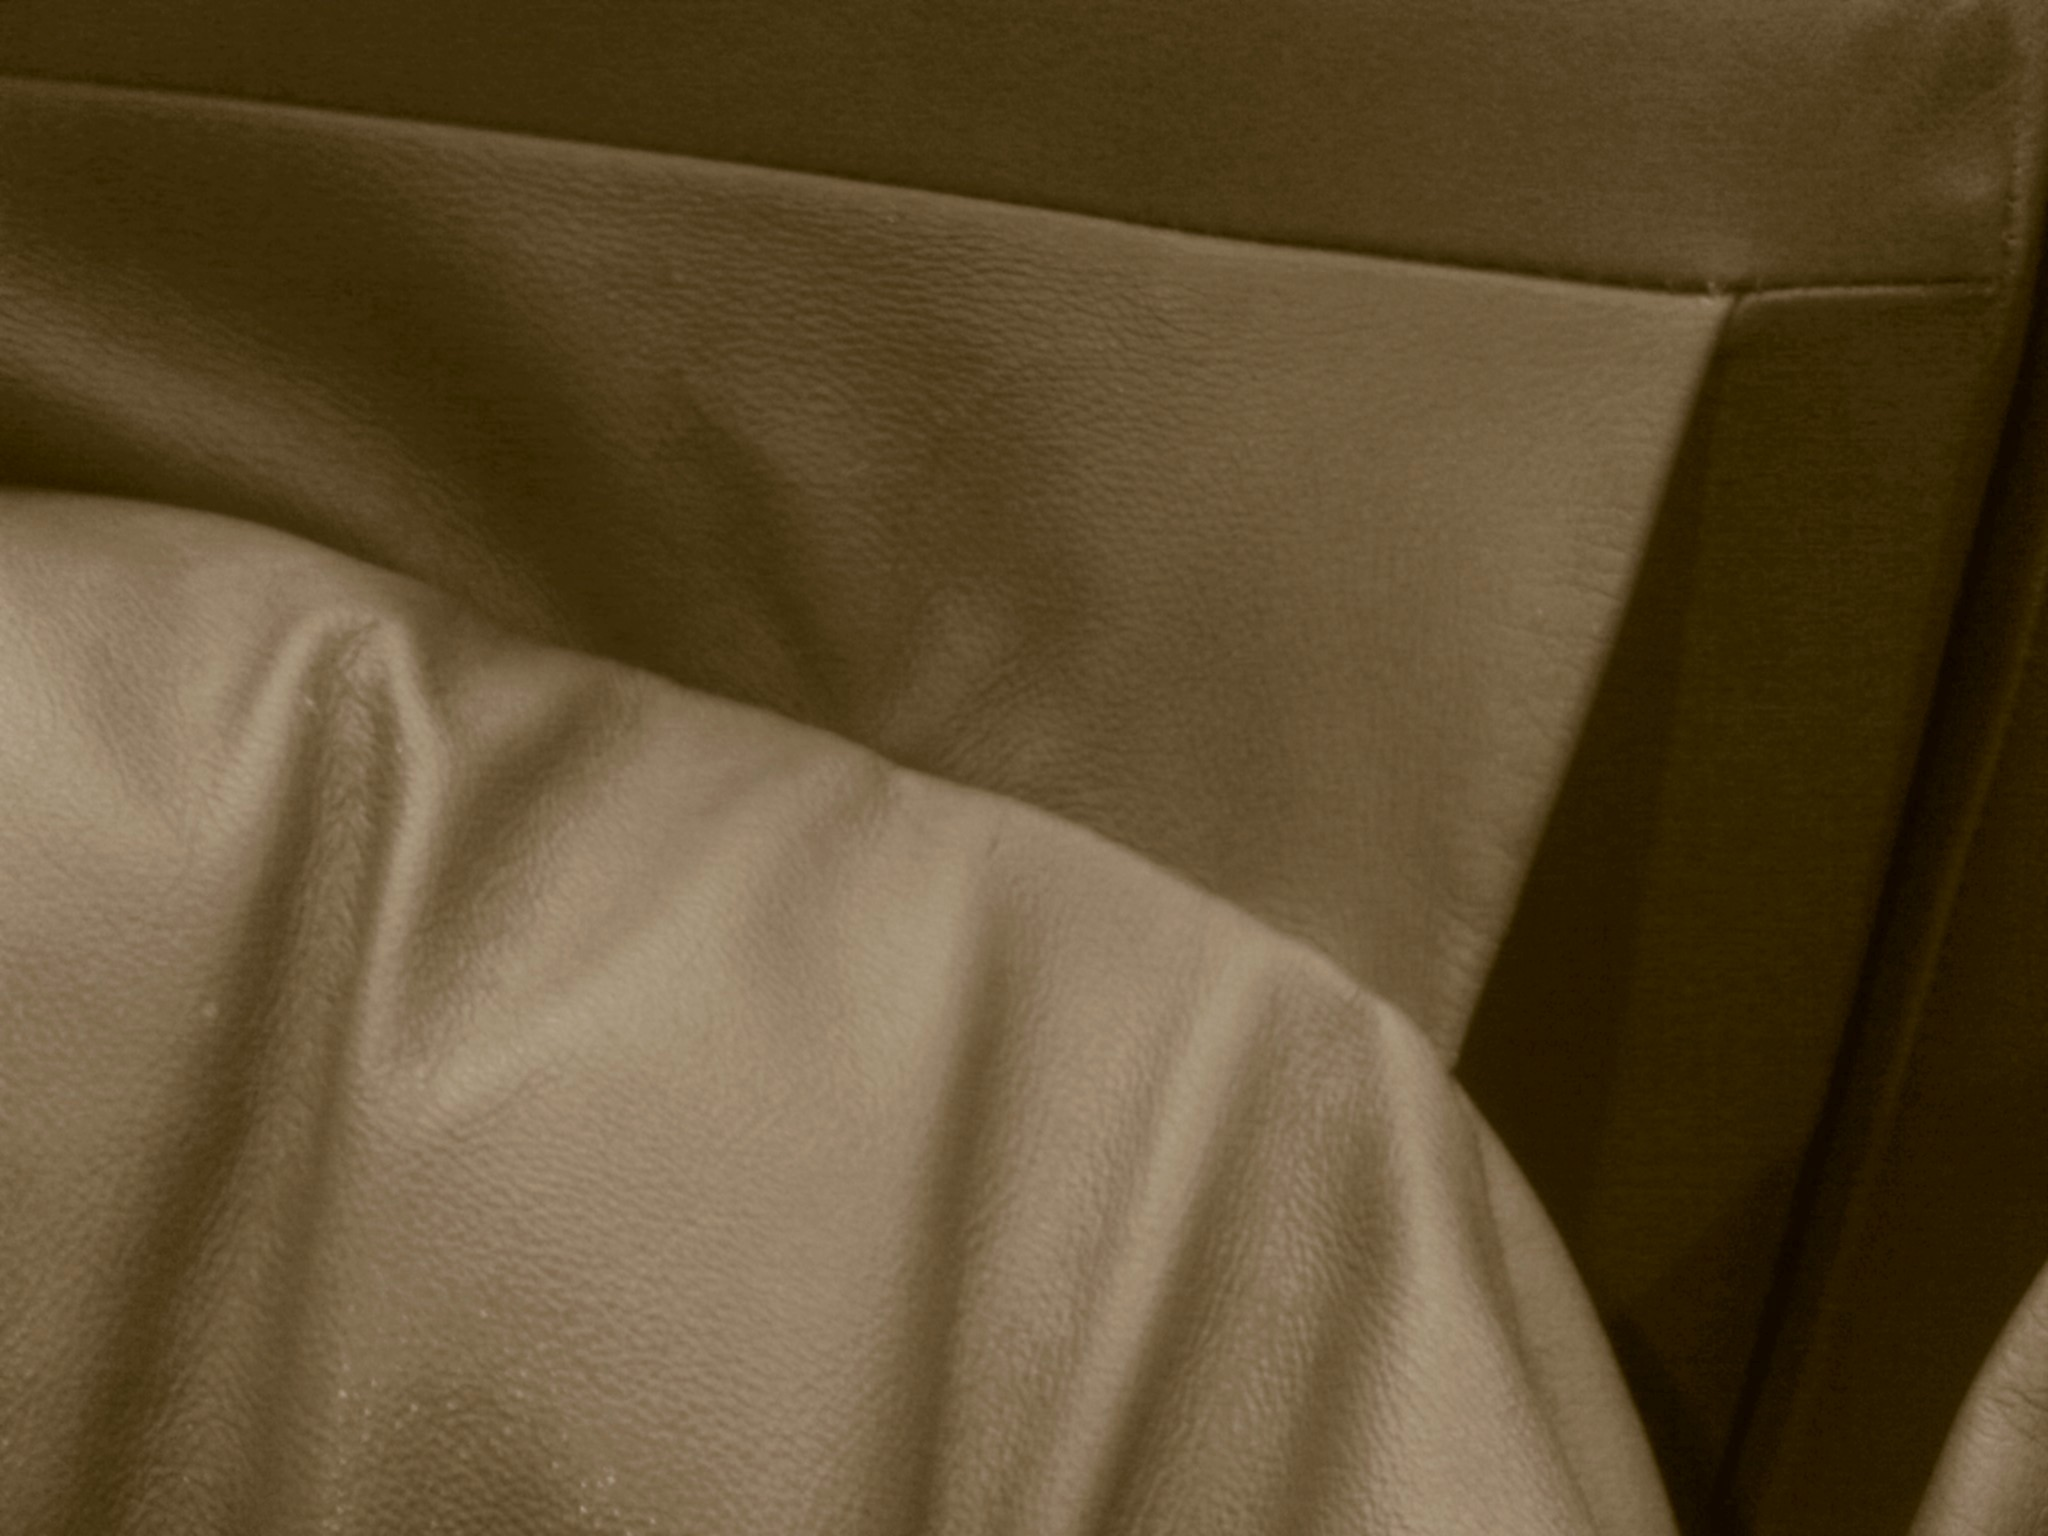 Seam Separation On Leather Couch Sofa Back Cushion Seam